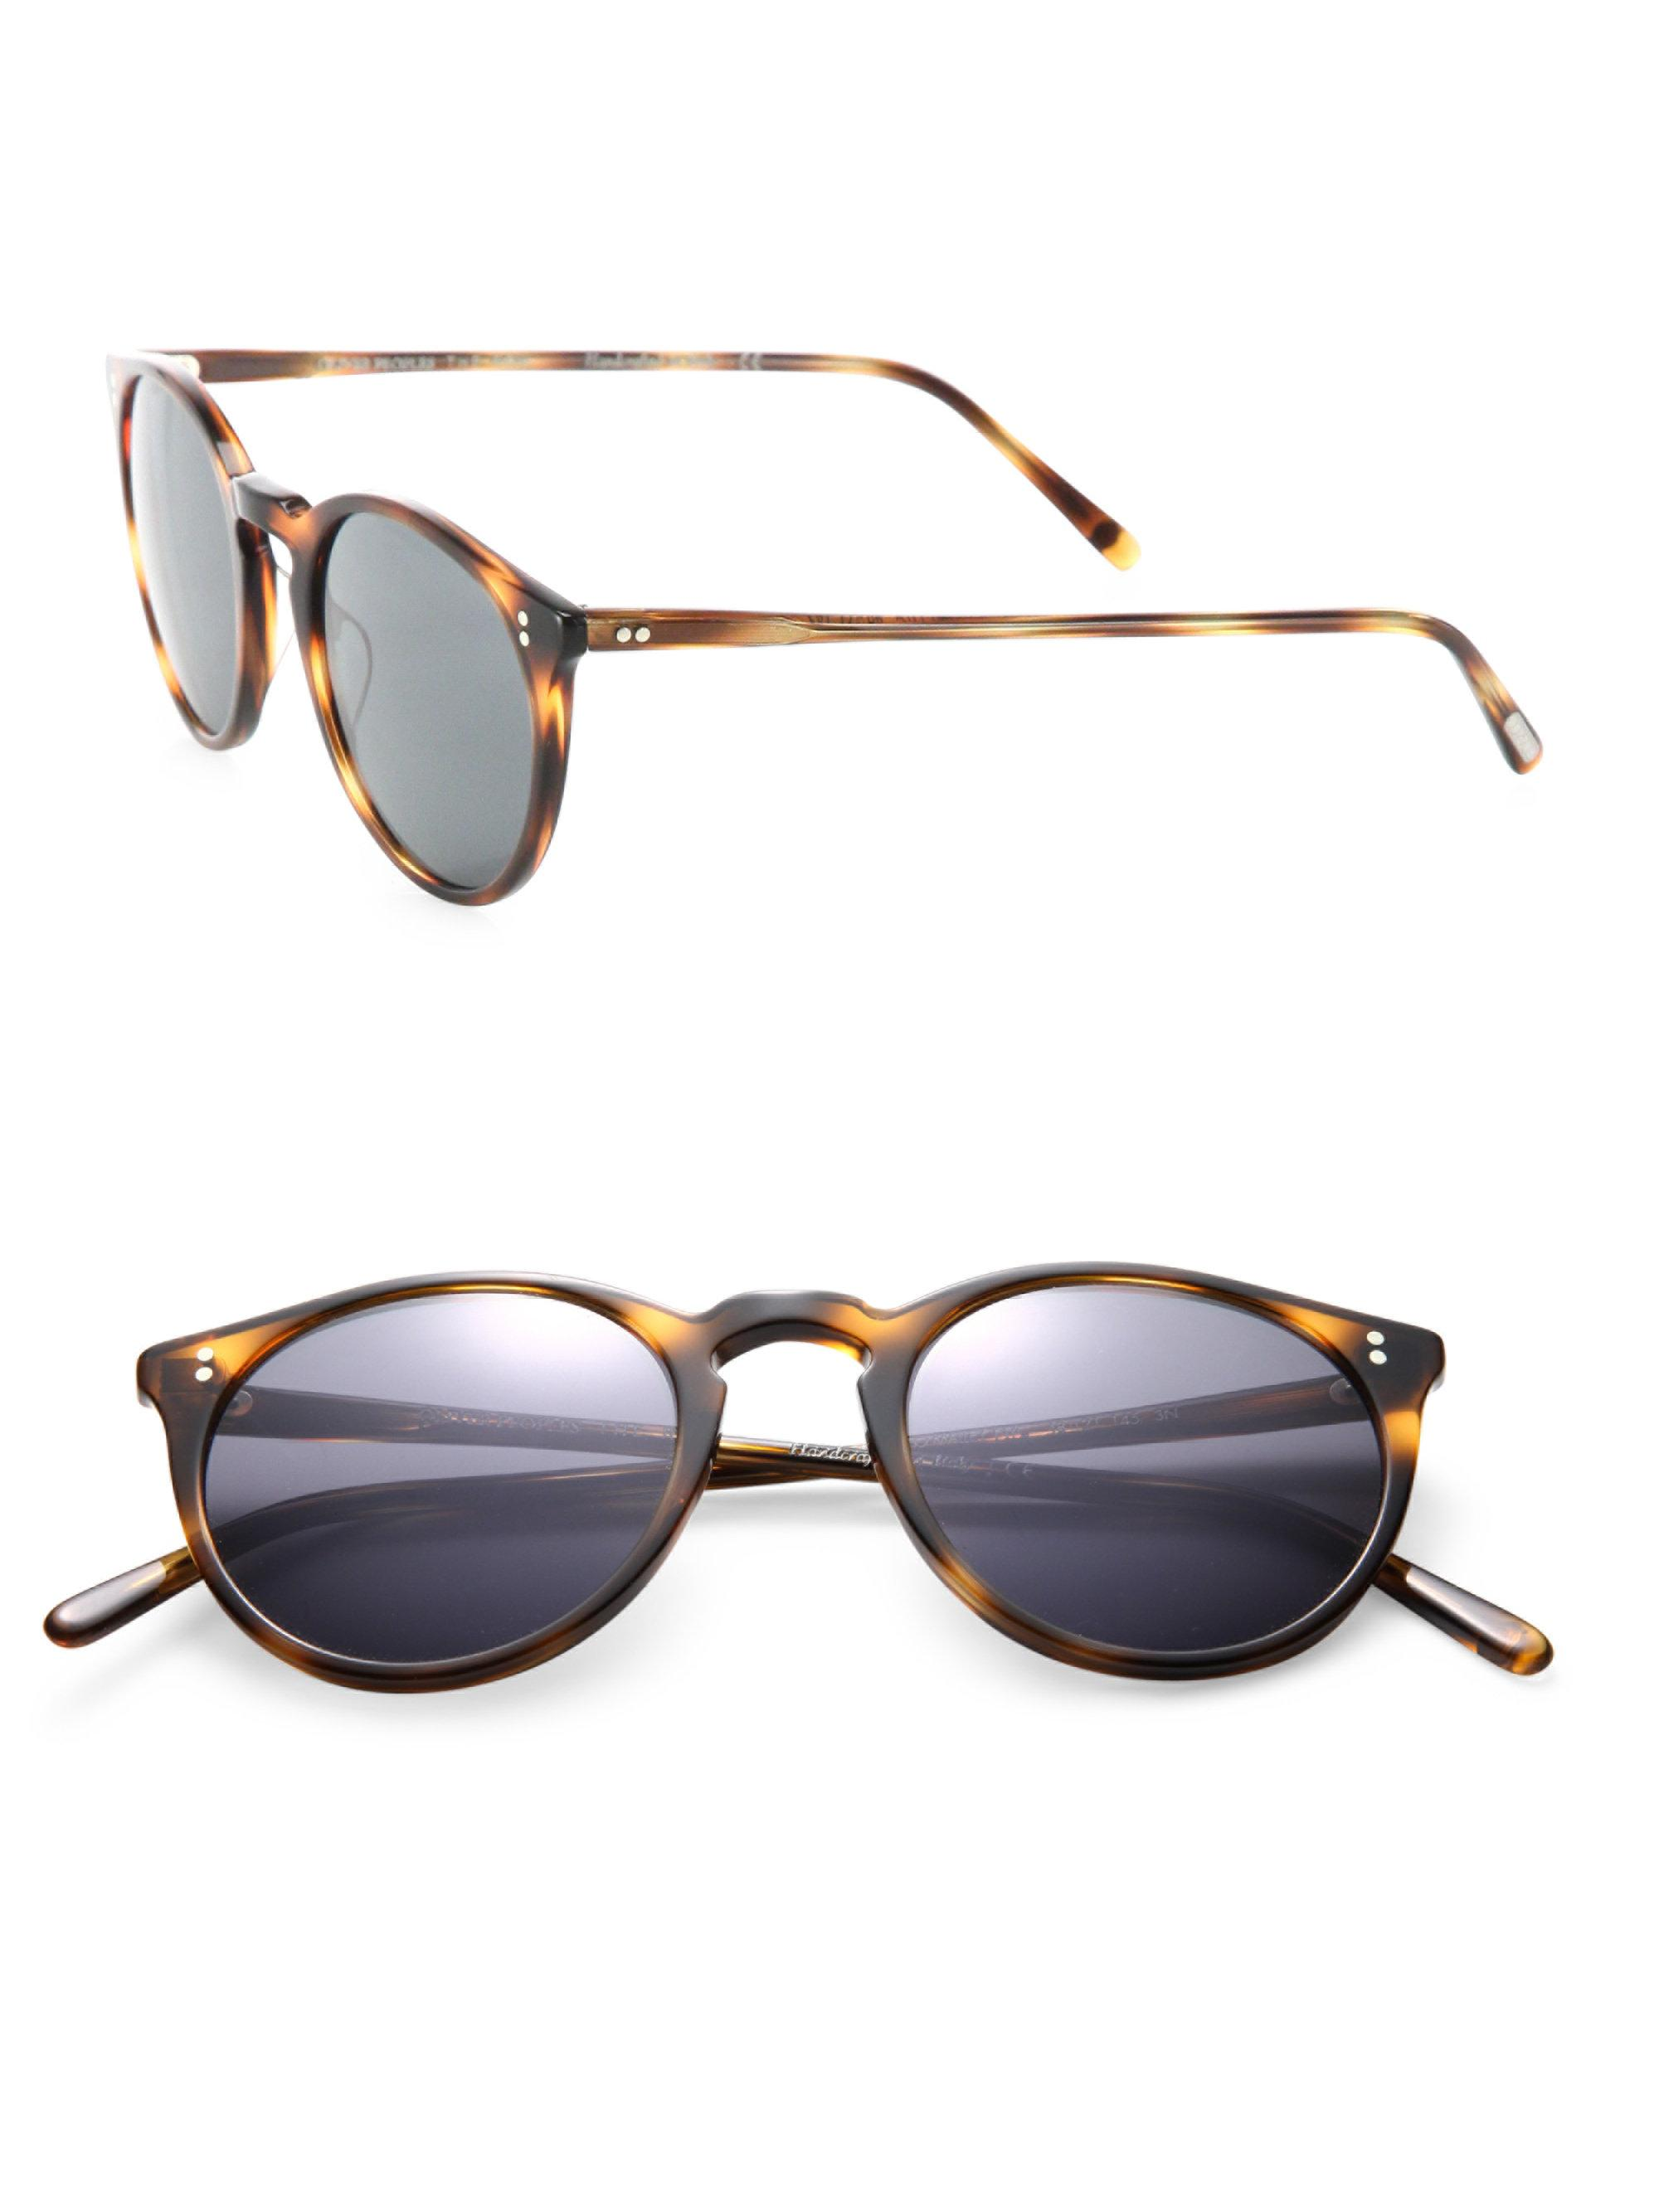 Lyst - Oliver Peoples The Row For Oliver Peoples O\'malley Nyc 48mm ...